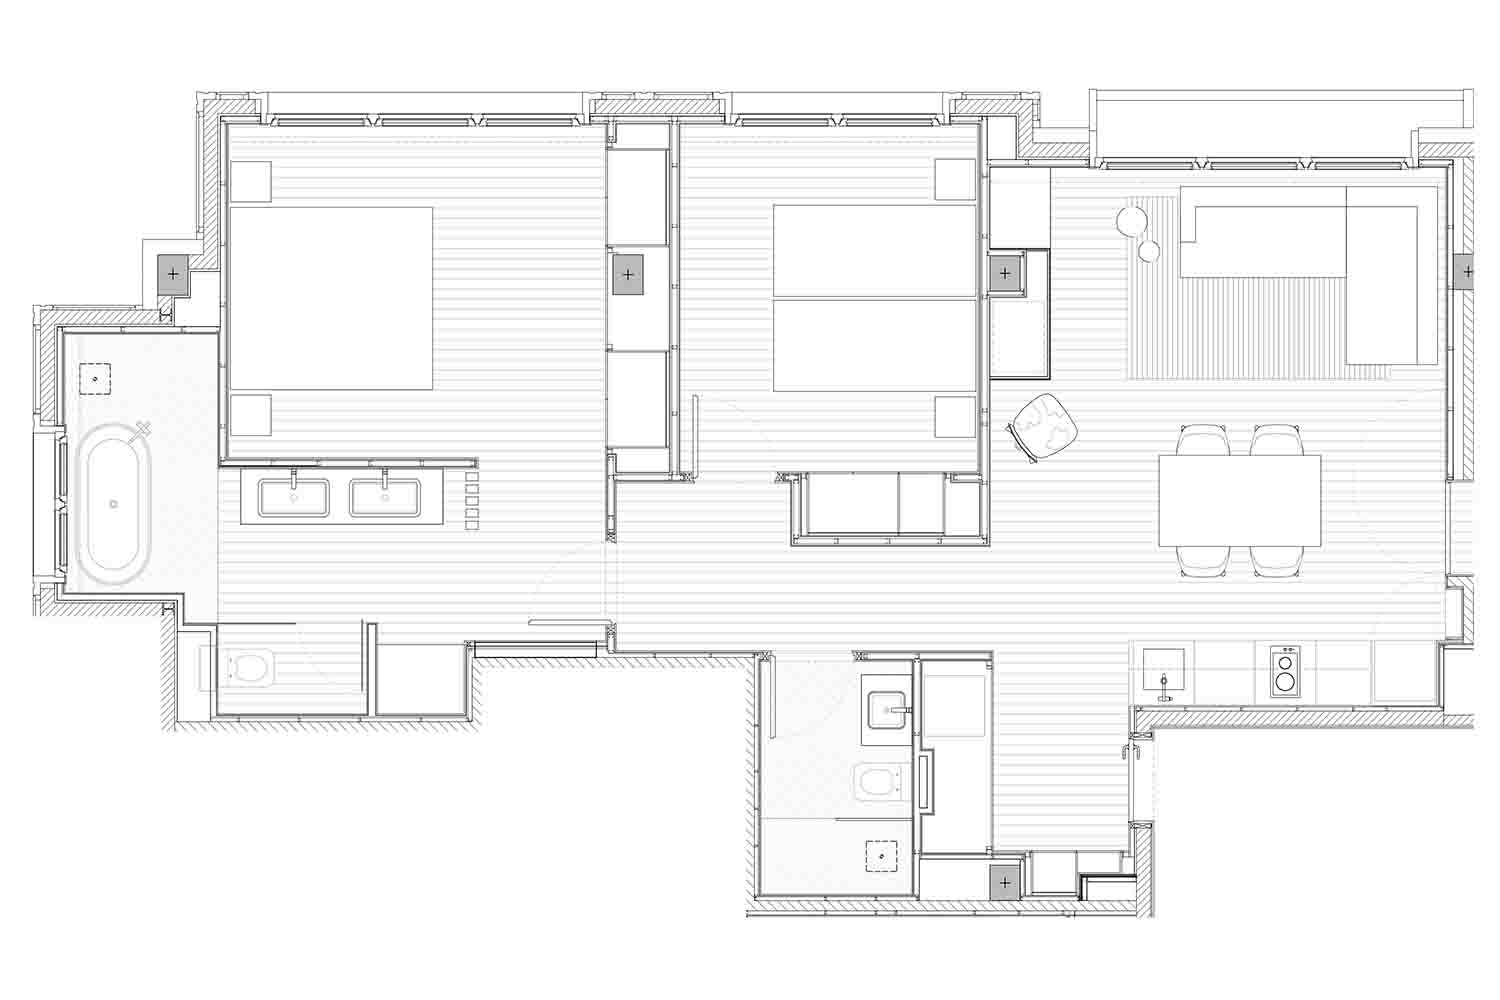 Hermitage Mountain Residences | Residencia Exclusiva Espadals 120 m2